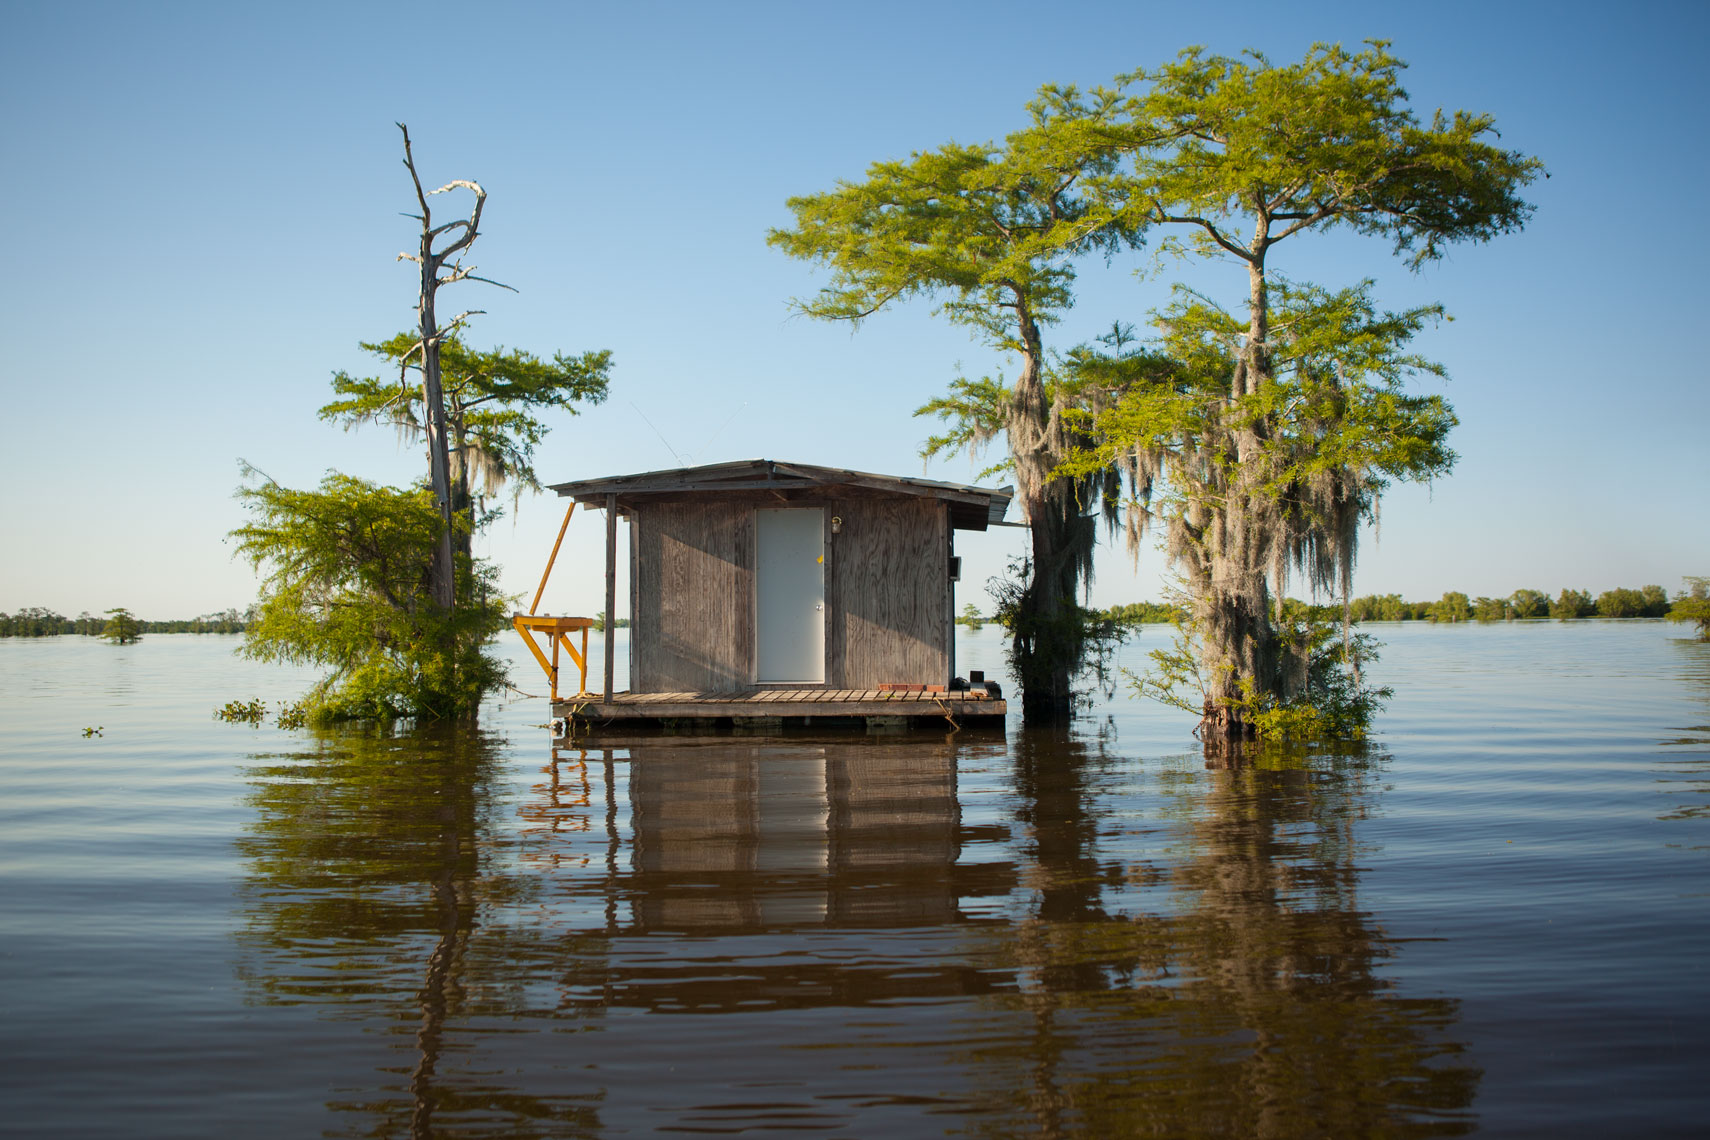 31_Kris_Davidson_National_Geographic_Swamp_Atchafalaya_Louisiana